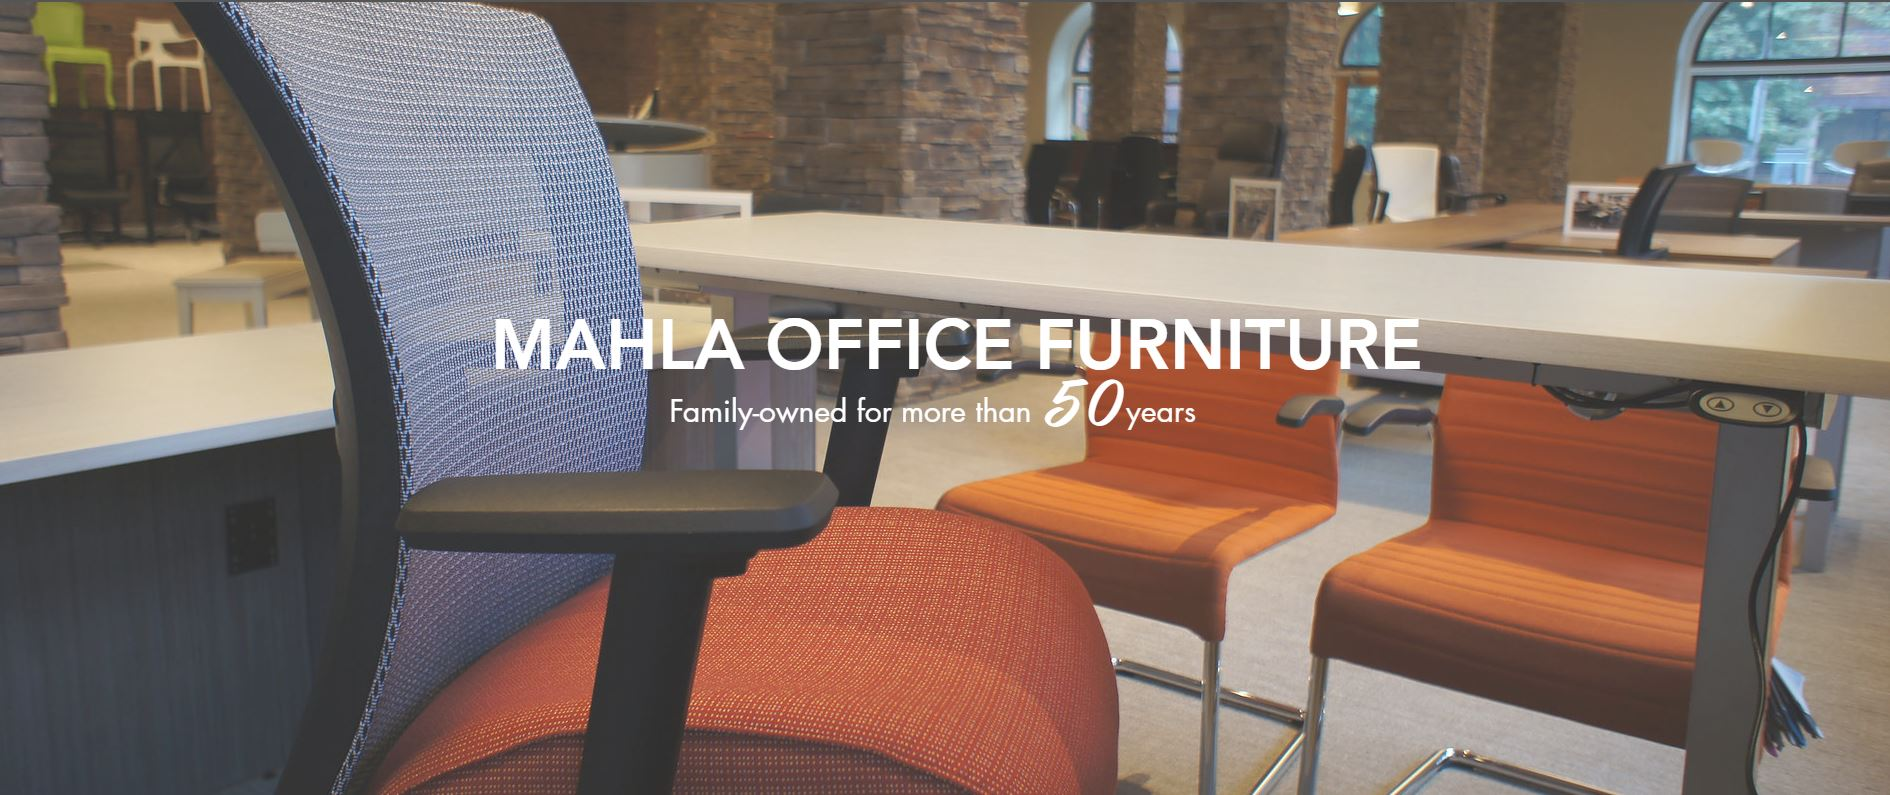 Mahla Office Furniture Office Furniture Pittsburgh Pa